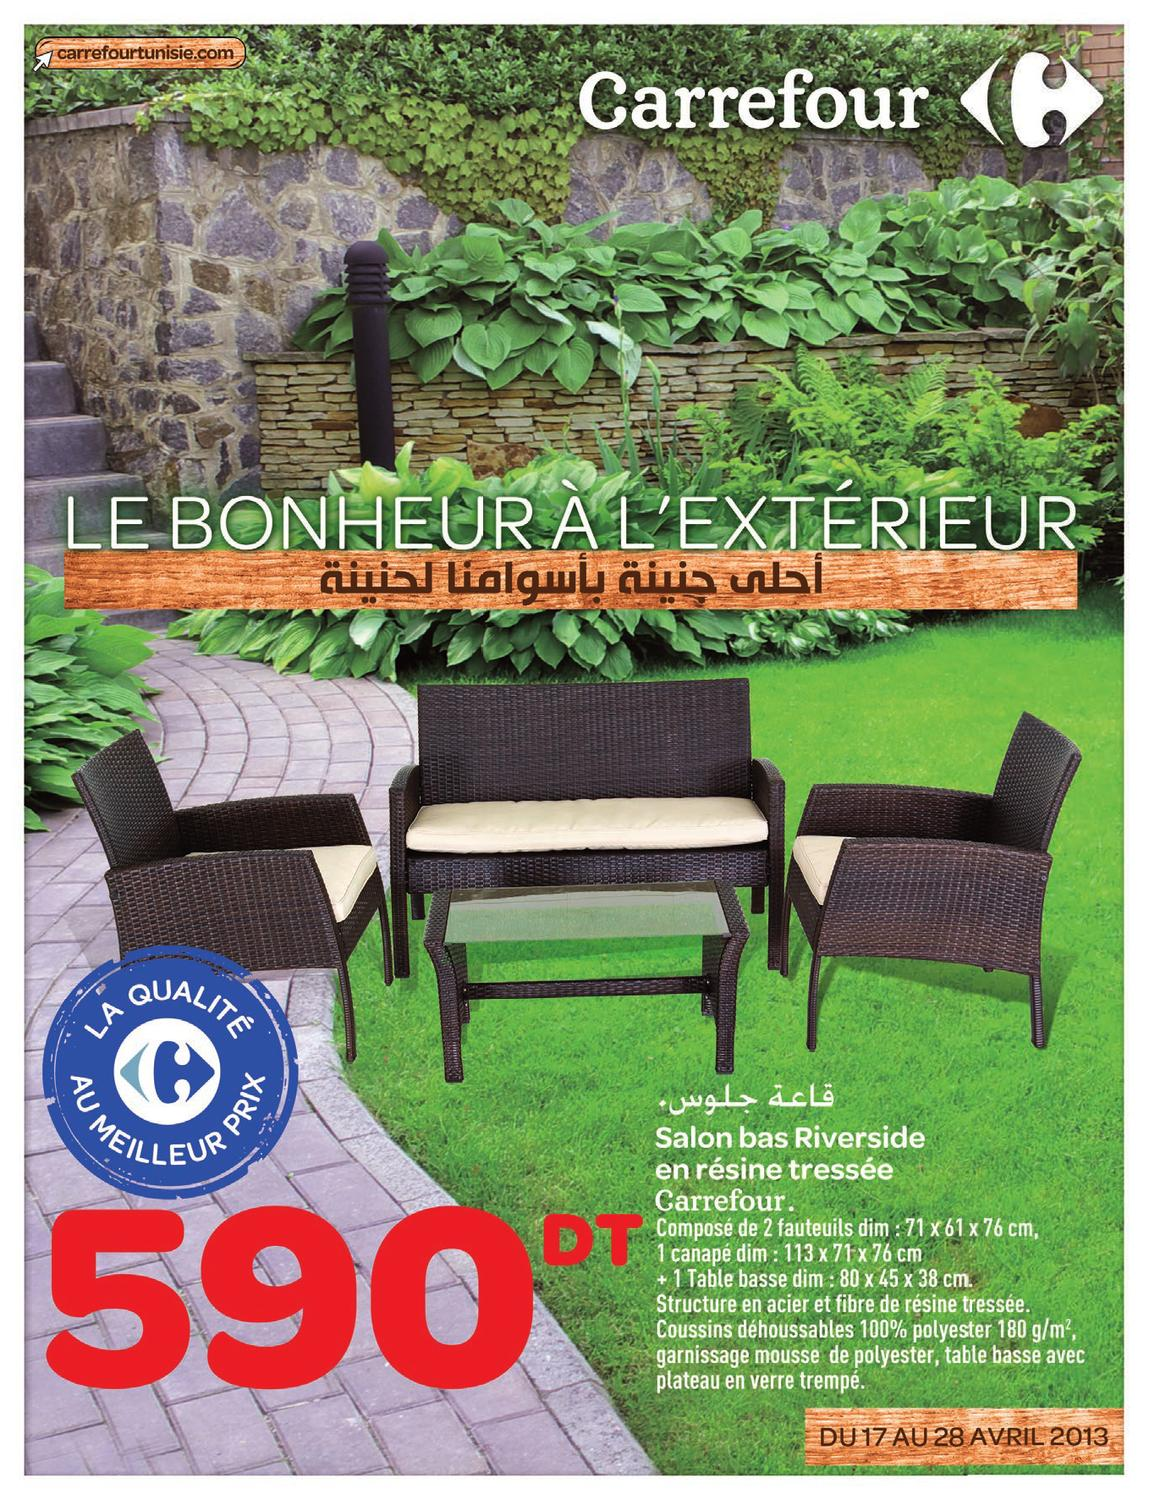 Catalogue carrefour le bonheur l 39 ext rieur by carrefour for Jardin 2000 tunisie